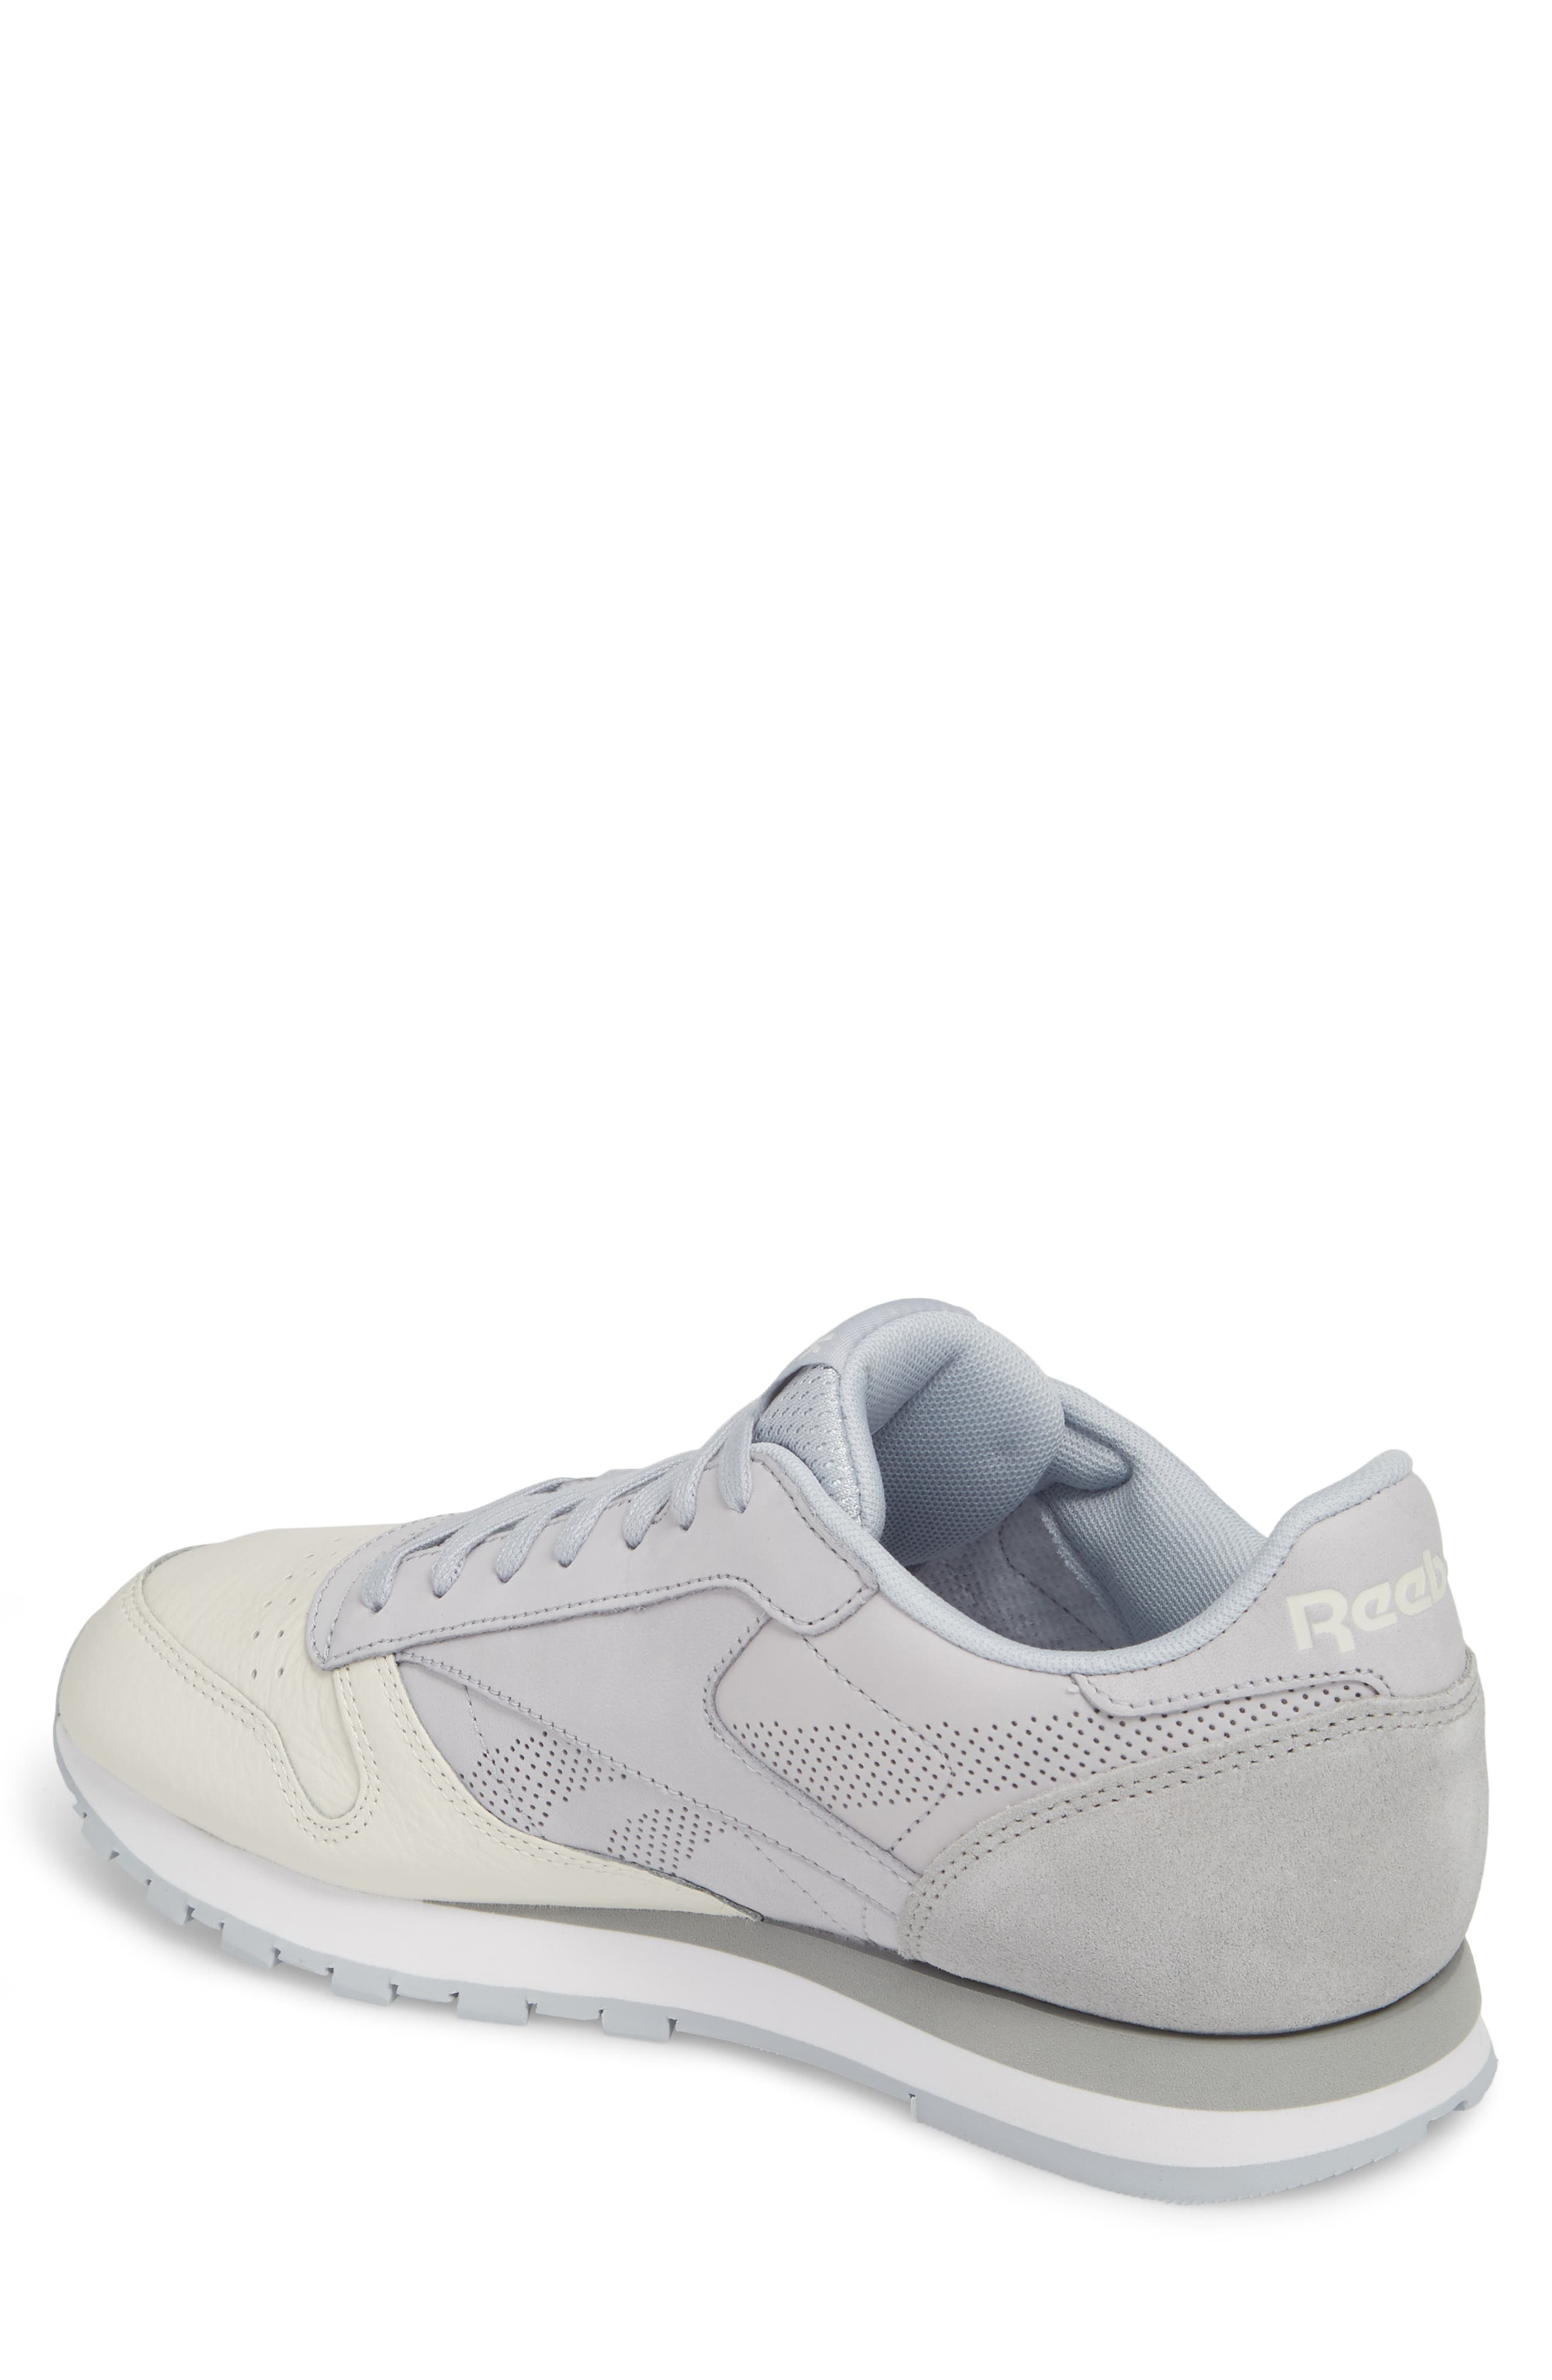 Classic Leather UE Sneaker,                             Alternate thumbnail 2, color,                             020